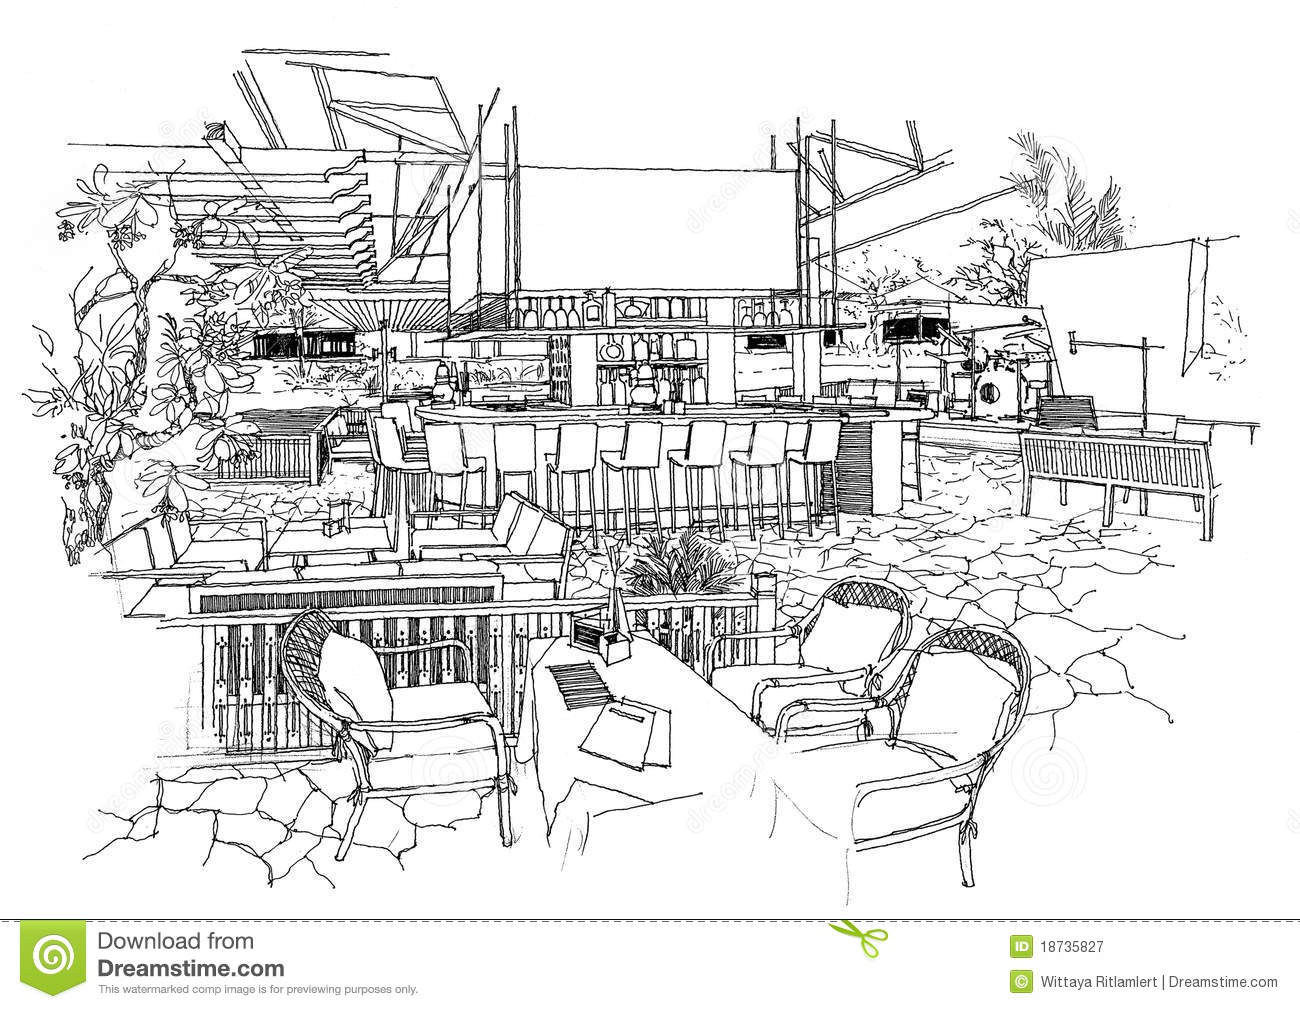 Interior architecture construction landscape sketch stock Online architecture drawing